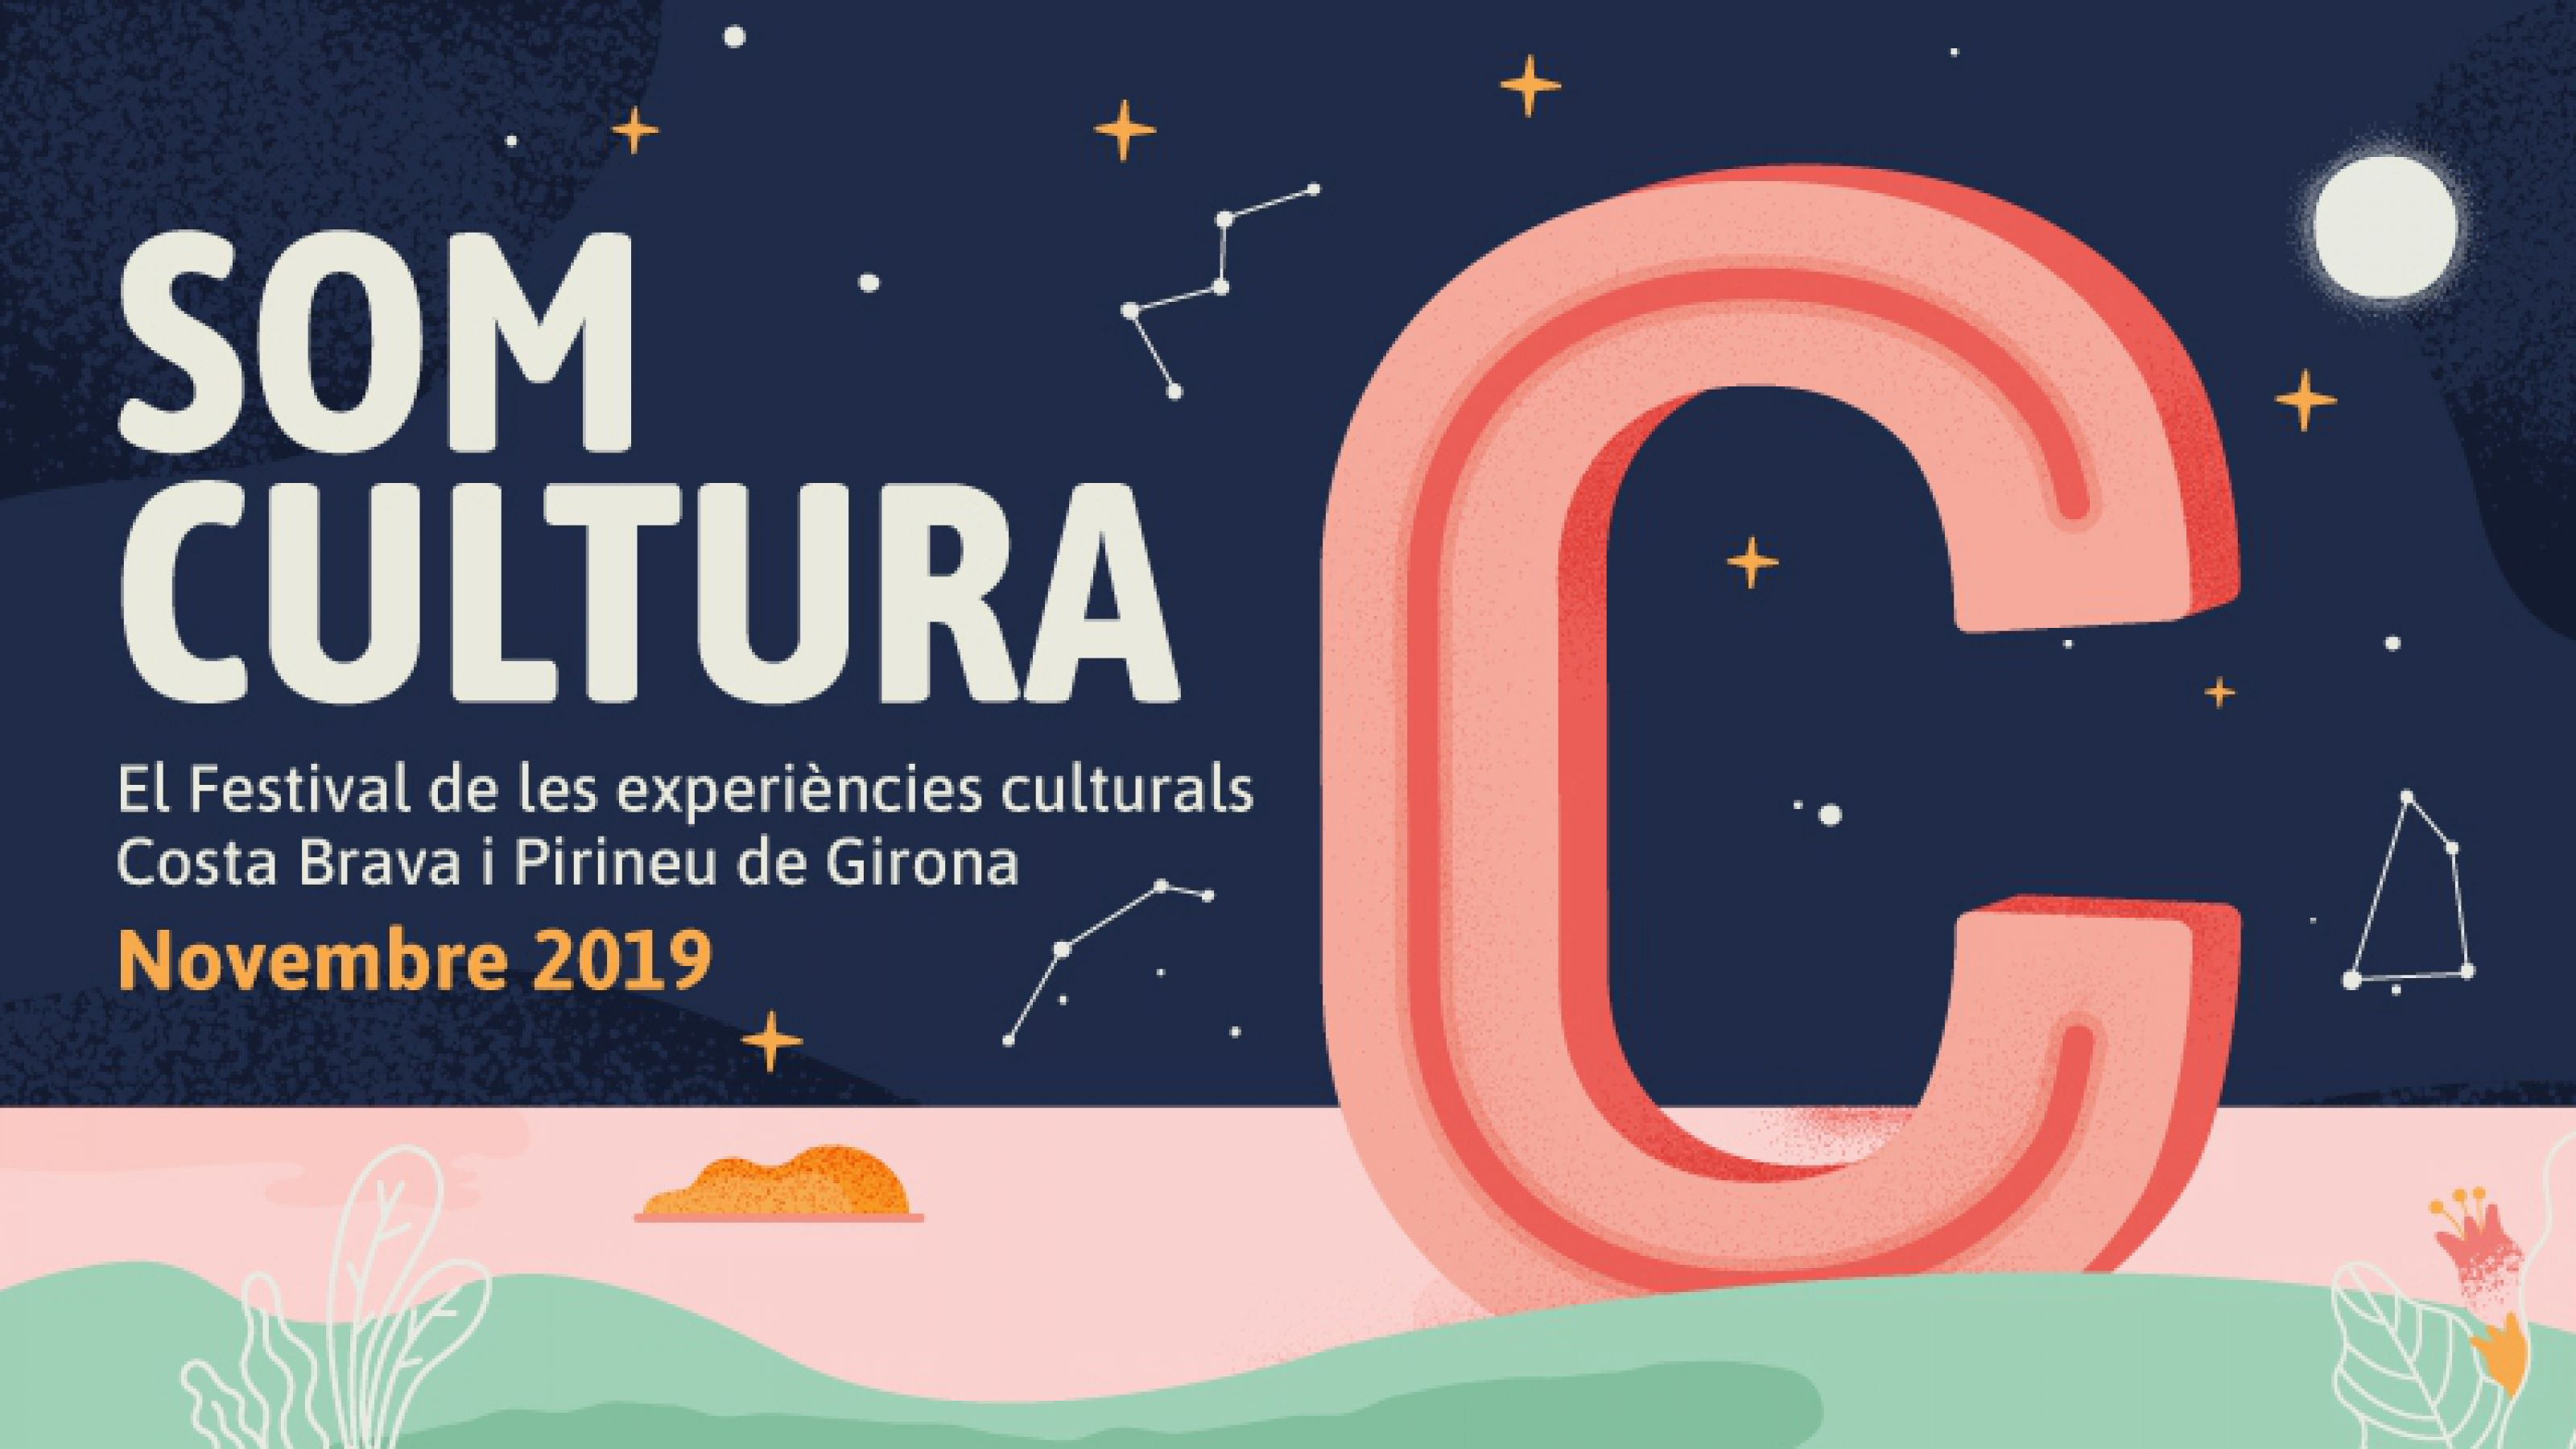 Promotional Image of the Som Cultura Festival 2019